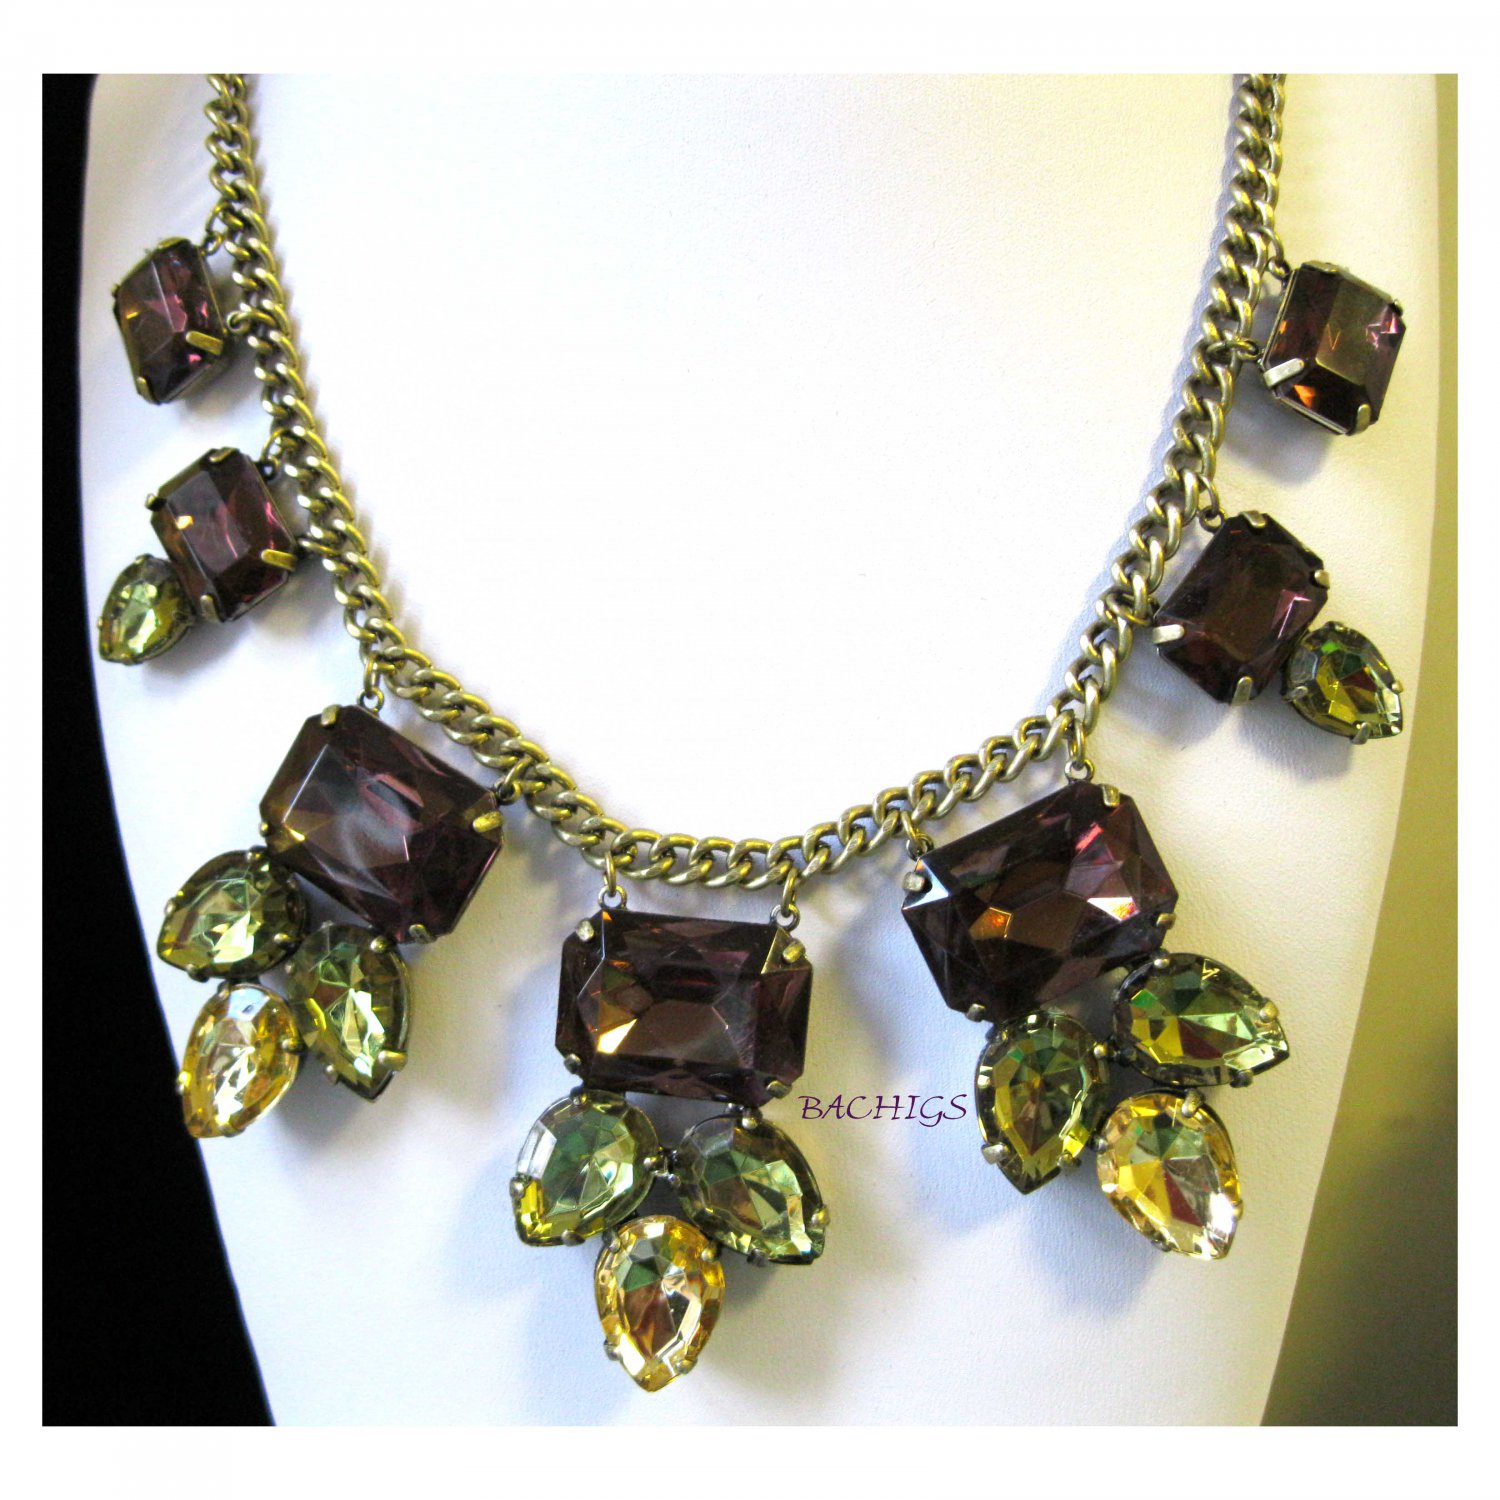 Browns and yellows adjustable statement fashion necklace